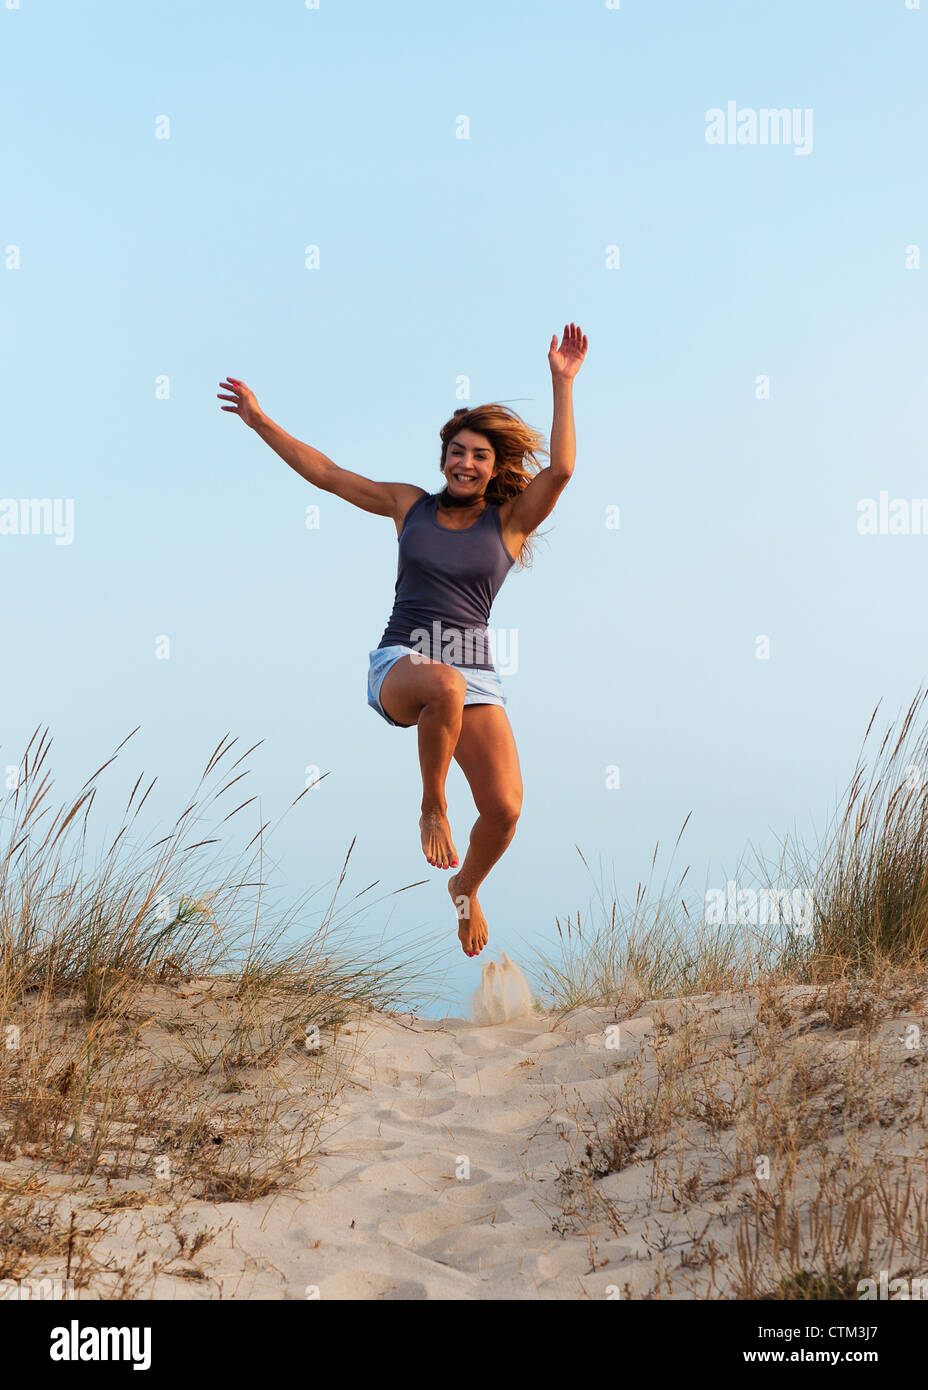 A Young Woman Running And Leaping Down A Sandy Path; Tarifa, Cadiz, Andalusia, Spain - Stock Image